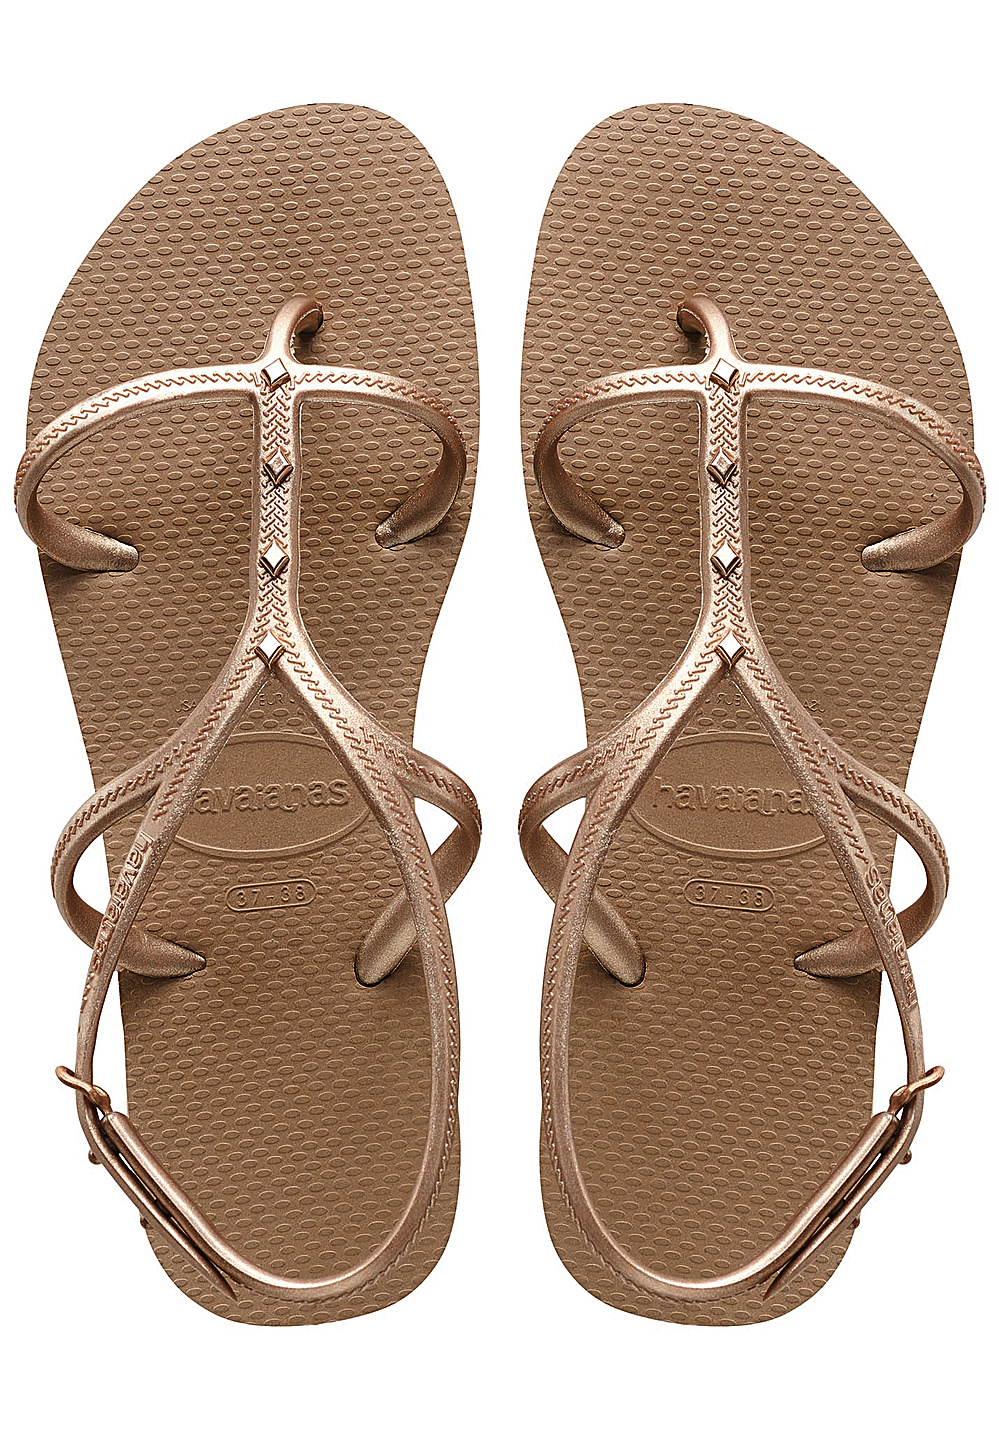 5be5e662c HAVAIANAS Allure Maxi - Sandals for Women - Gold - Planet Sports